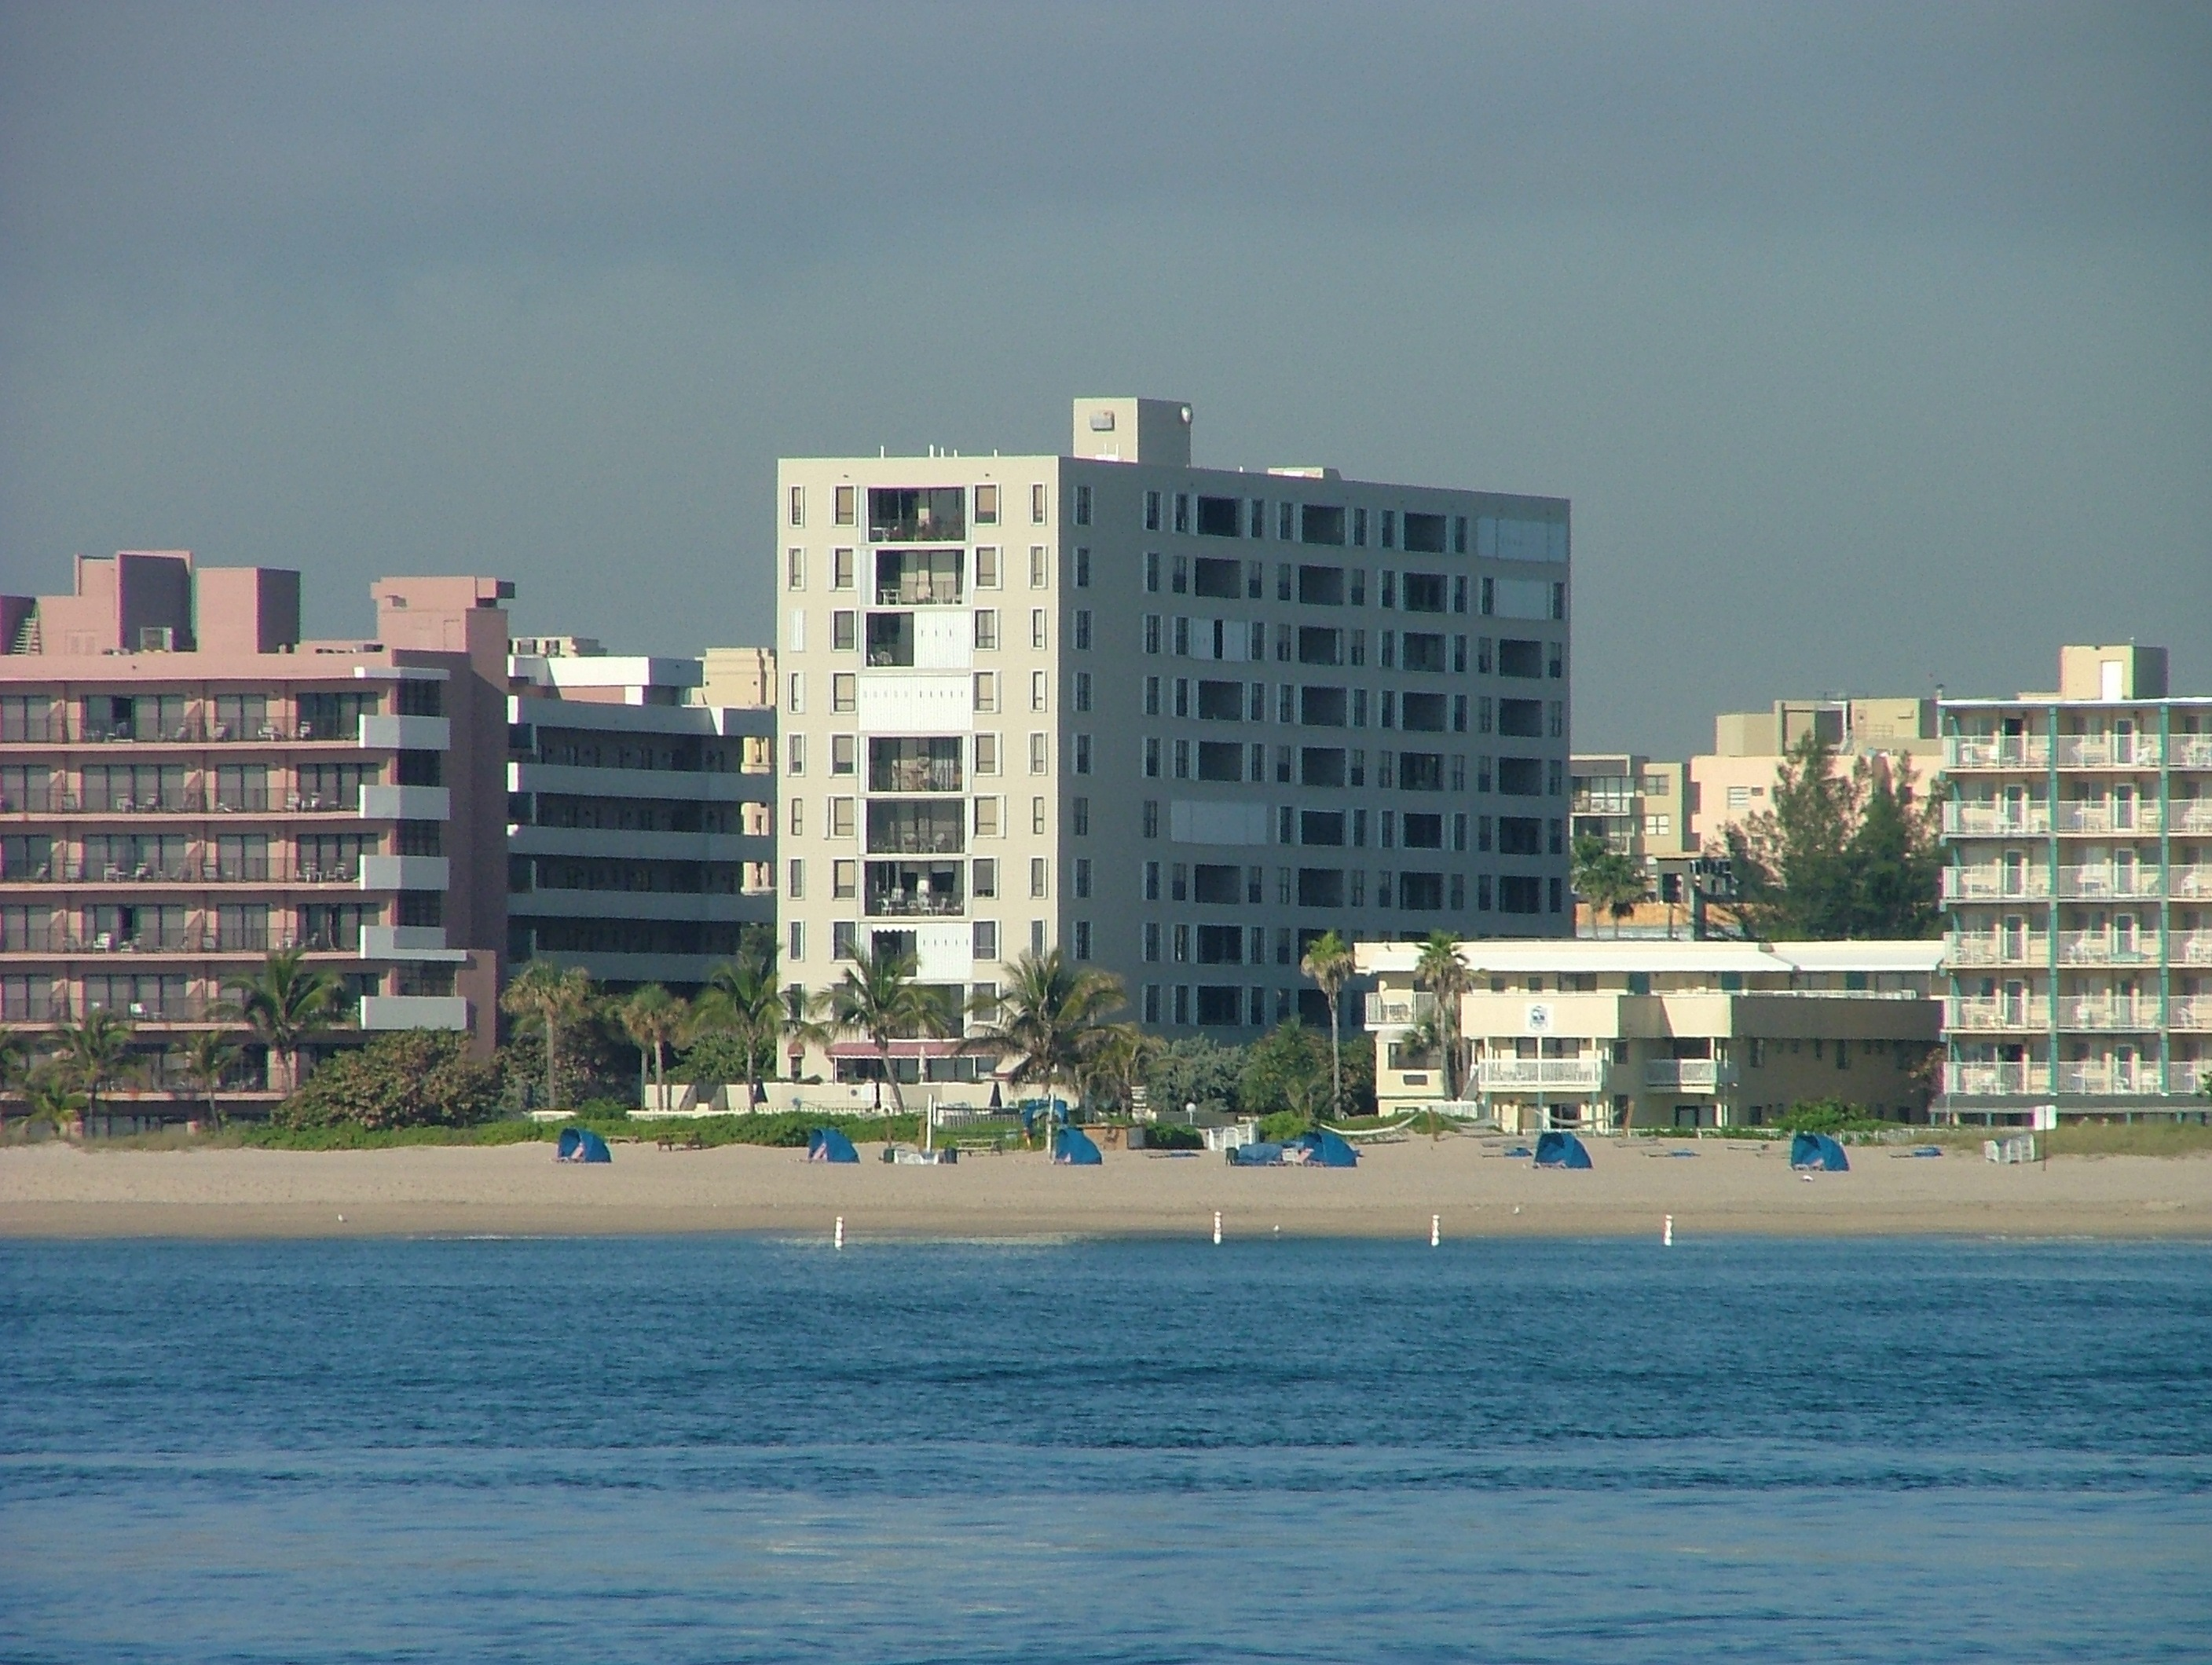 1500 Ocean Club Pompano Beach Condos for Sale